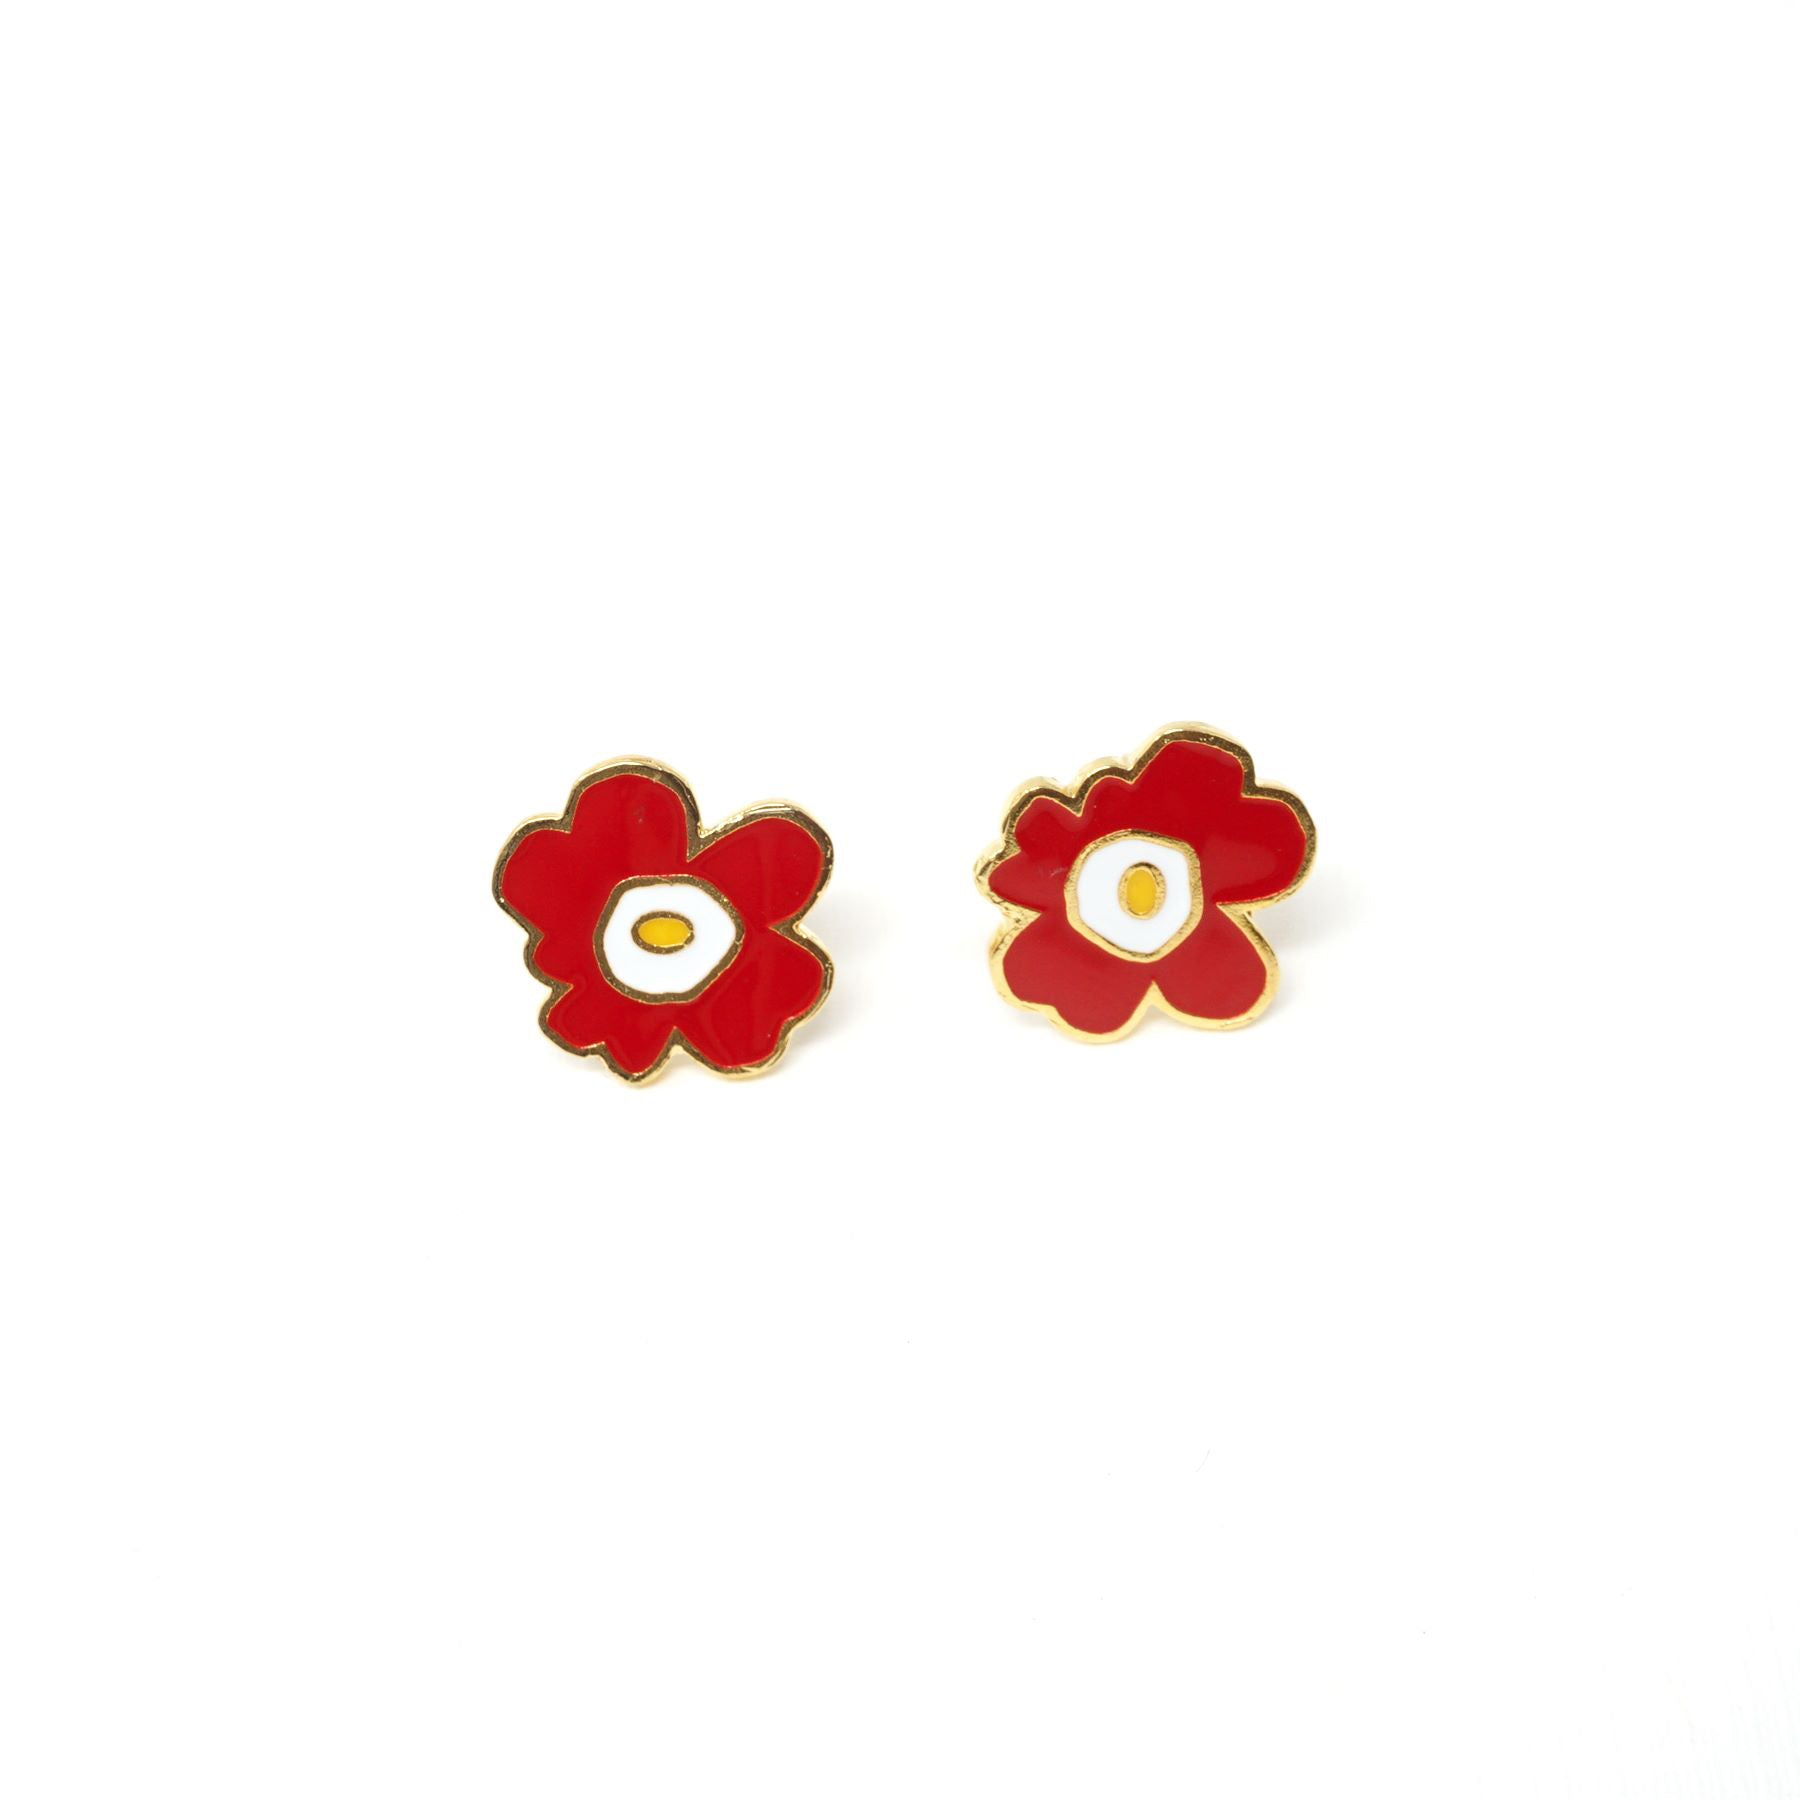 Miss Modi presents Handcrafted Red Poppy Enamel Stud Earrings